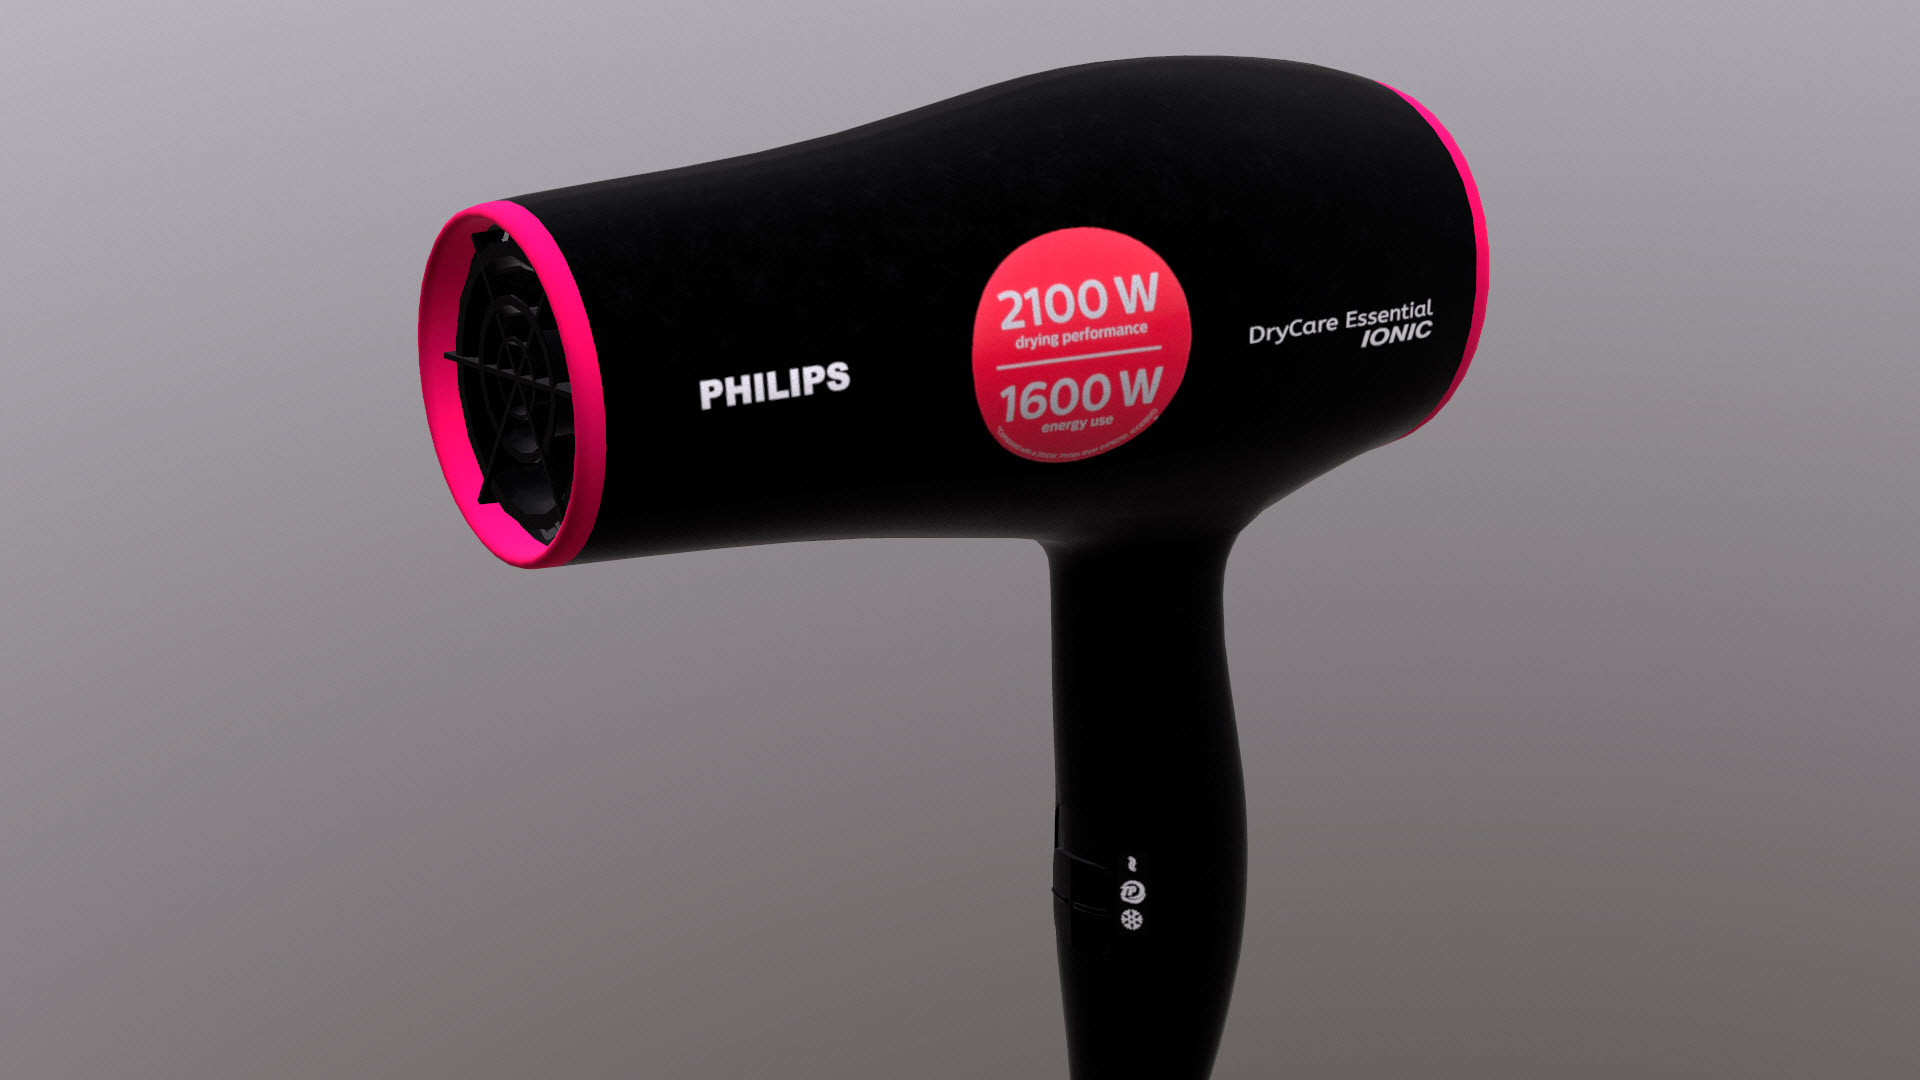 Dry care. Hair dryer model in 3d max Other image